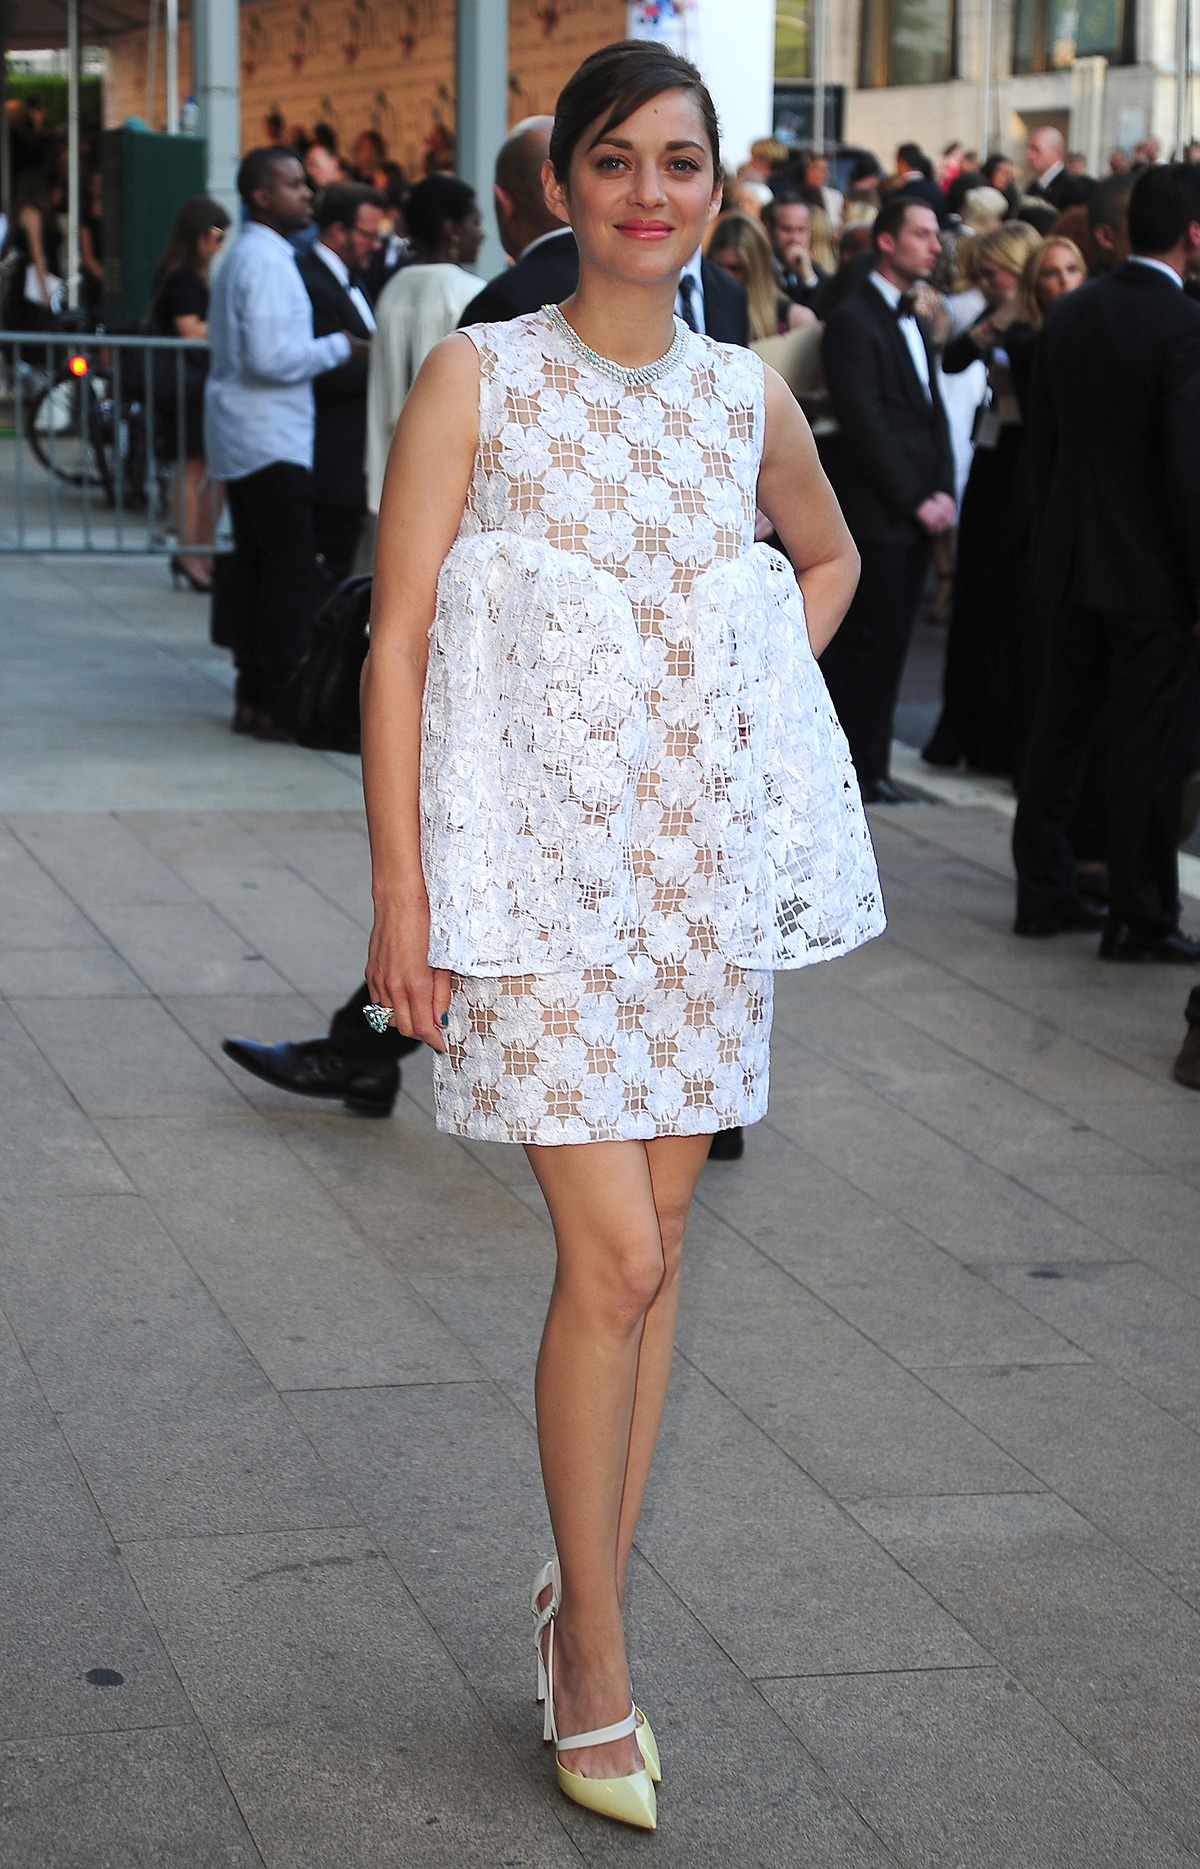 Marion Cottilard at the 2014 CFDA